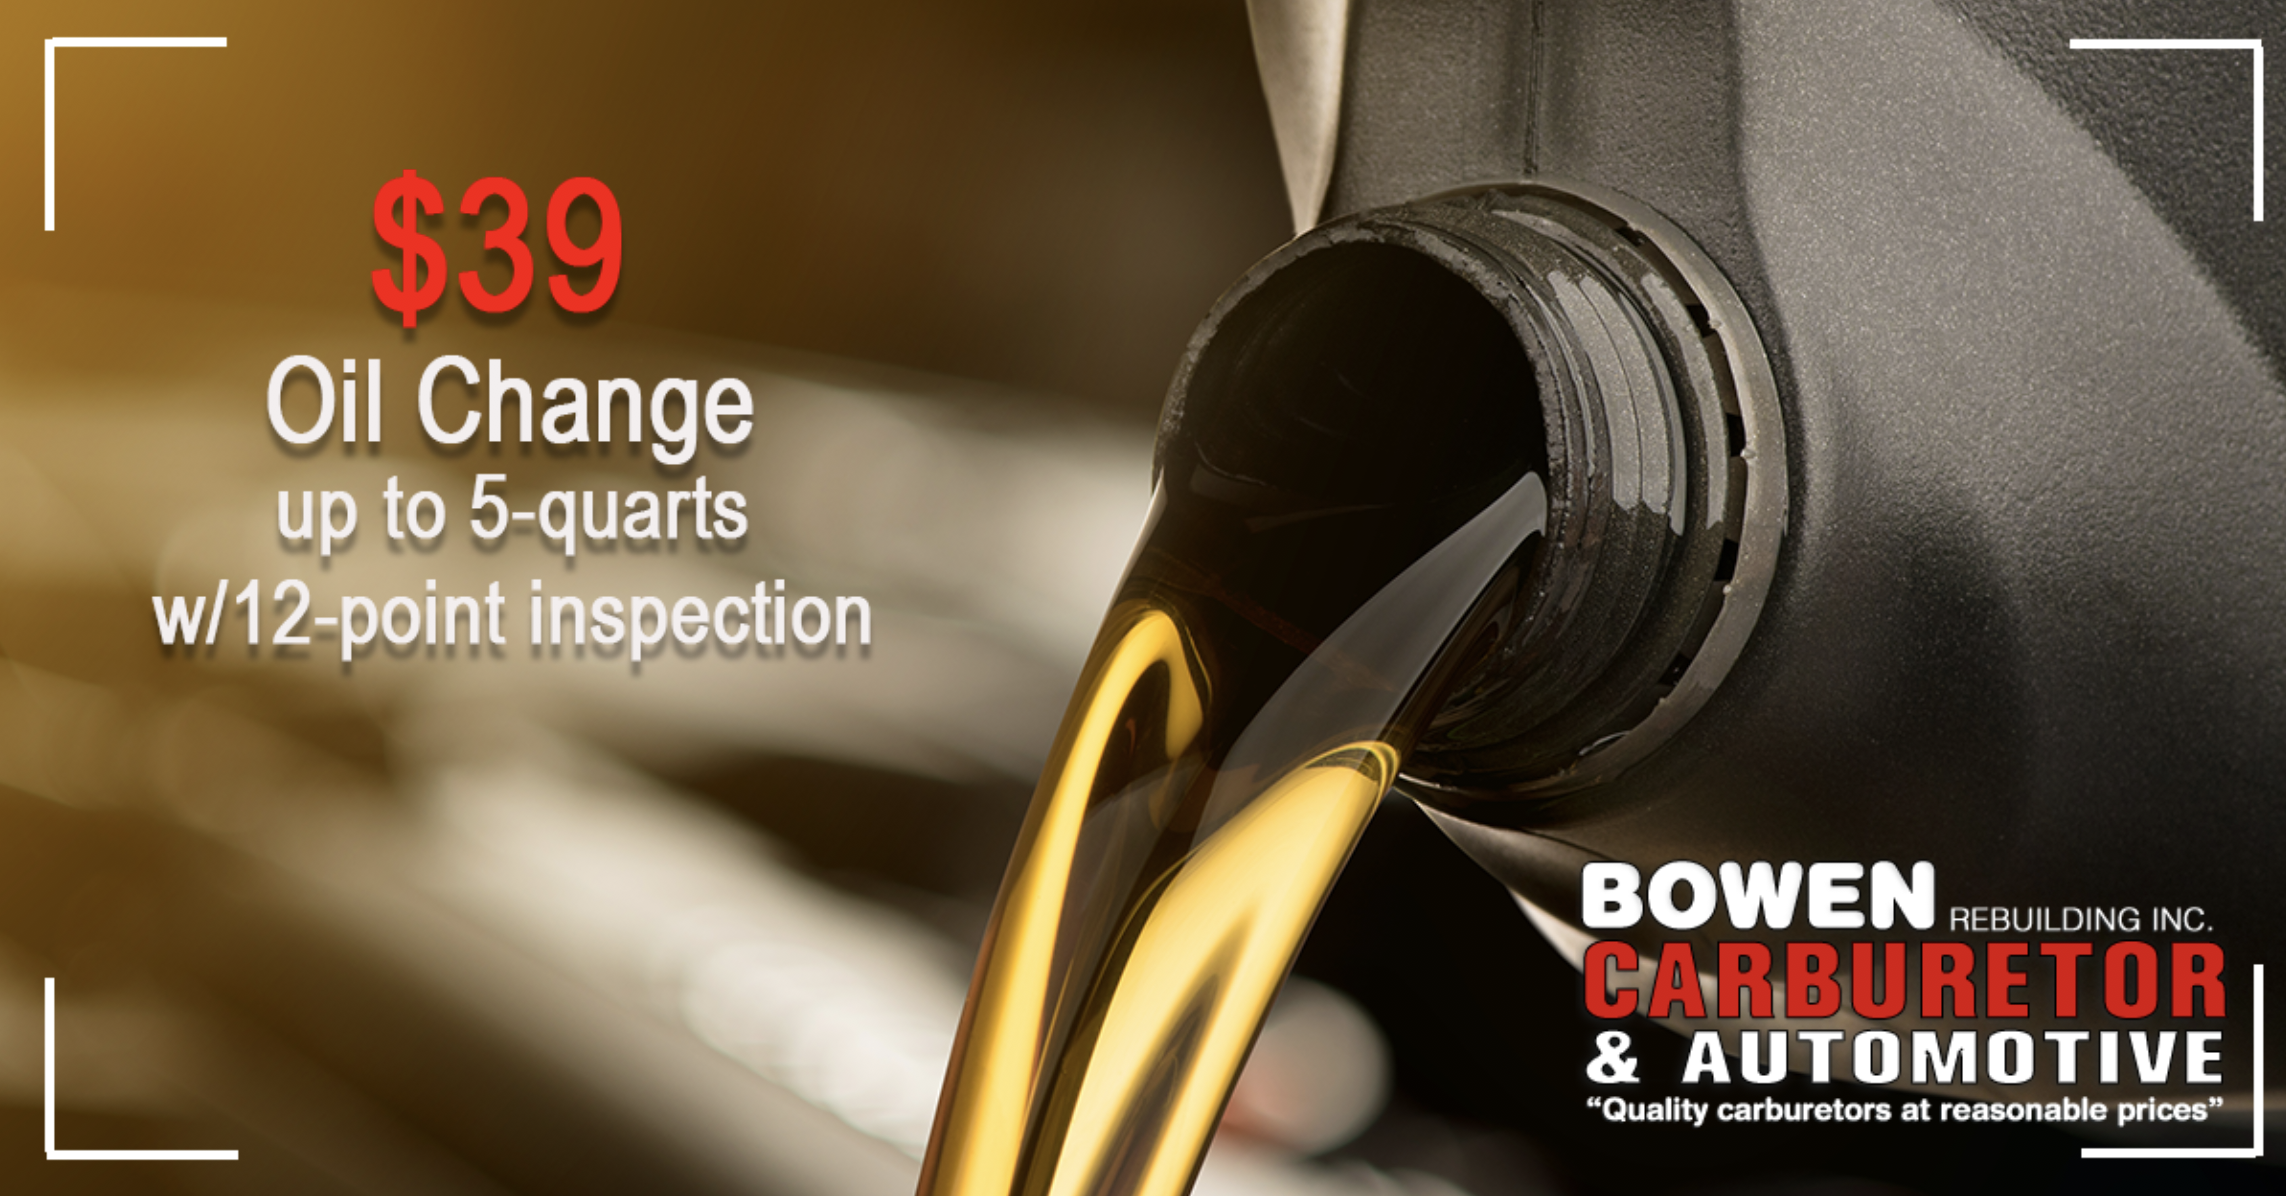 Oil change levittown bristol pa pennsylvania 19056 19057 19007